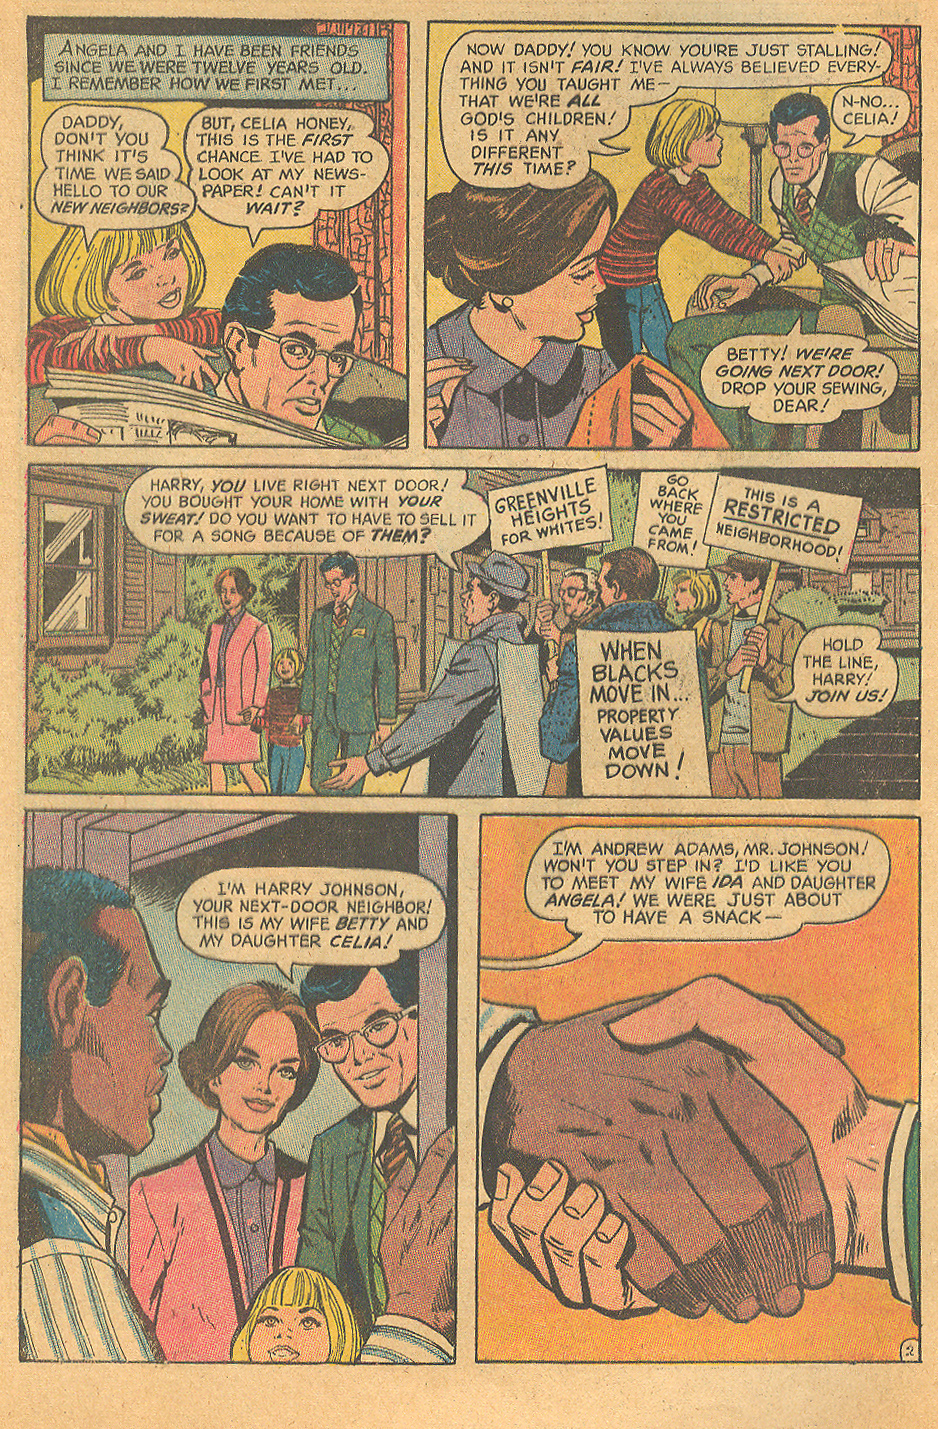 No, you are not imaging things. You have seen that handshake before -- in the saga of  Margo and Chuck , also penciled by Werner Roth.